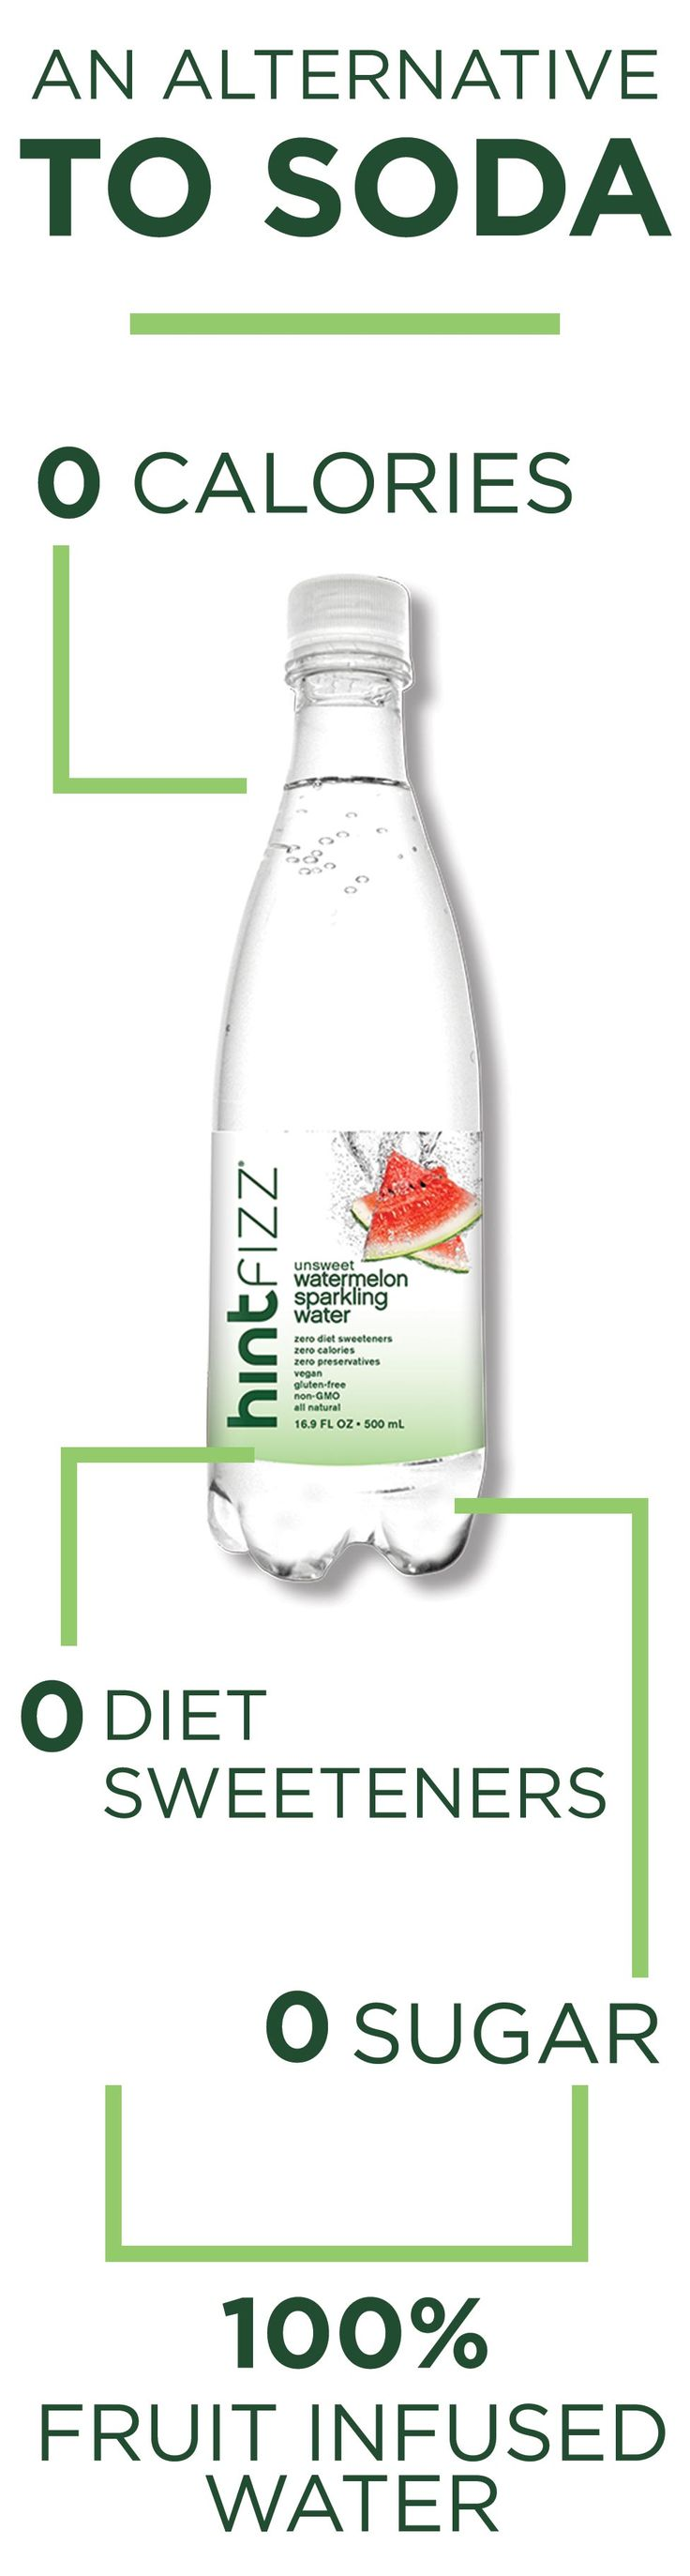 Looking for something that can replace your soda or juice habit? Meet Hint Water. Made up of 0 sugars, 0 calories, and 0 diet sweeteners, this fruit infused water is exactly what you've been searching for. Peach, watermelon, cherry, pick your flavor and get the Hint!